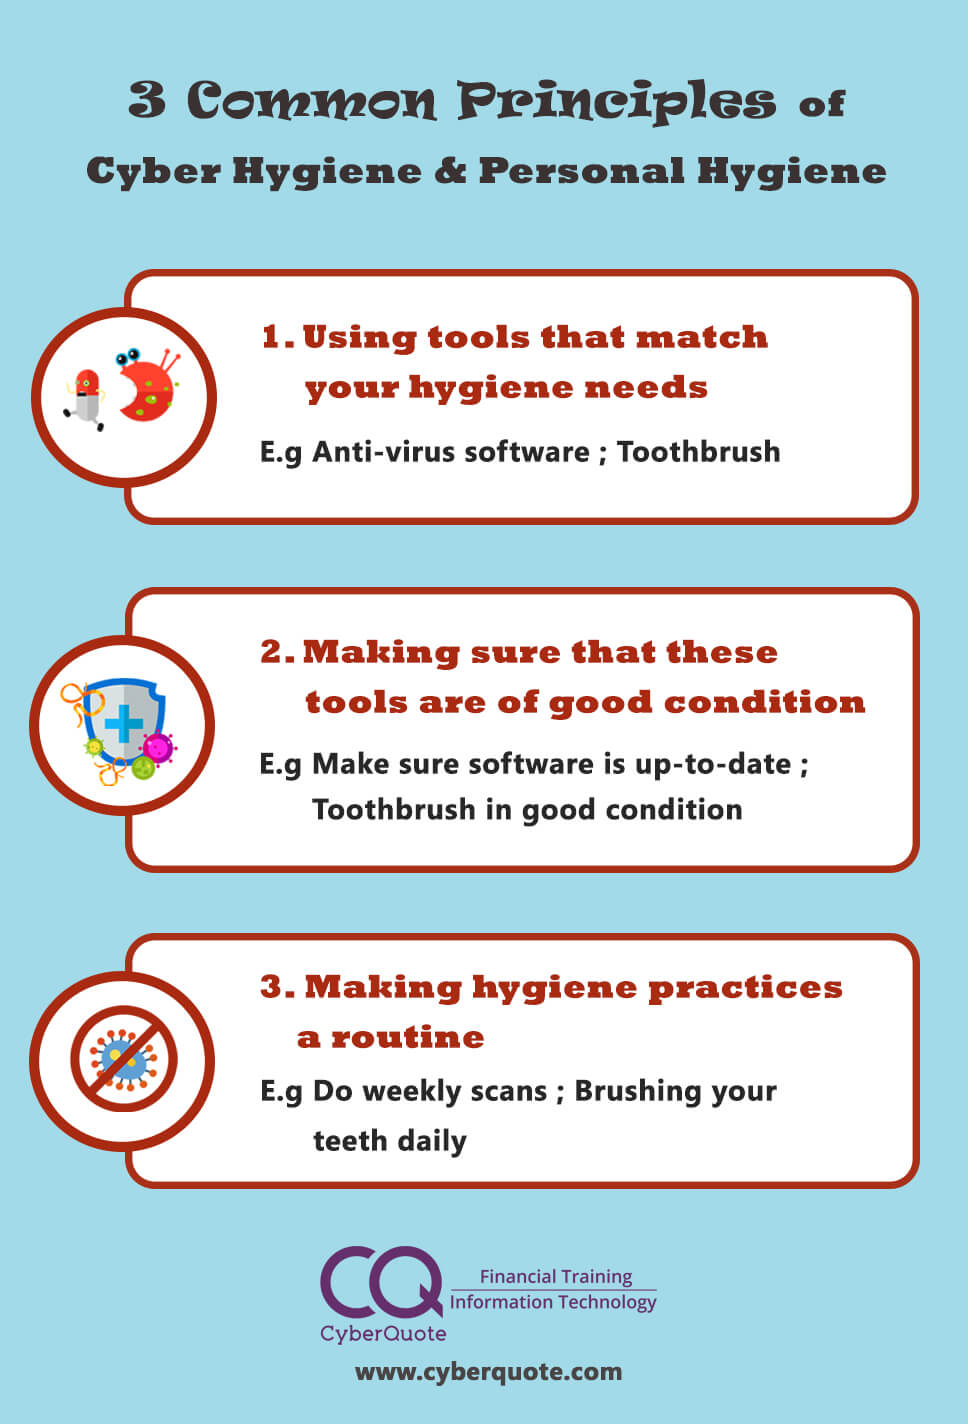 Common Principles of Personal Hygiene Cyber Hygiene